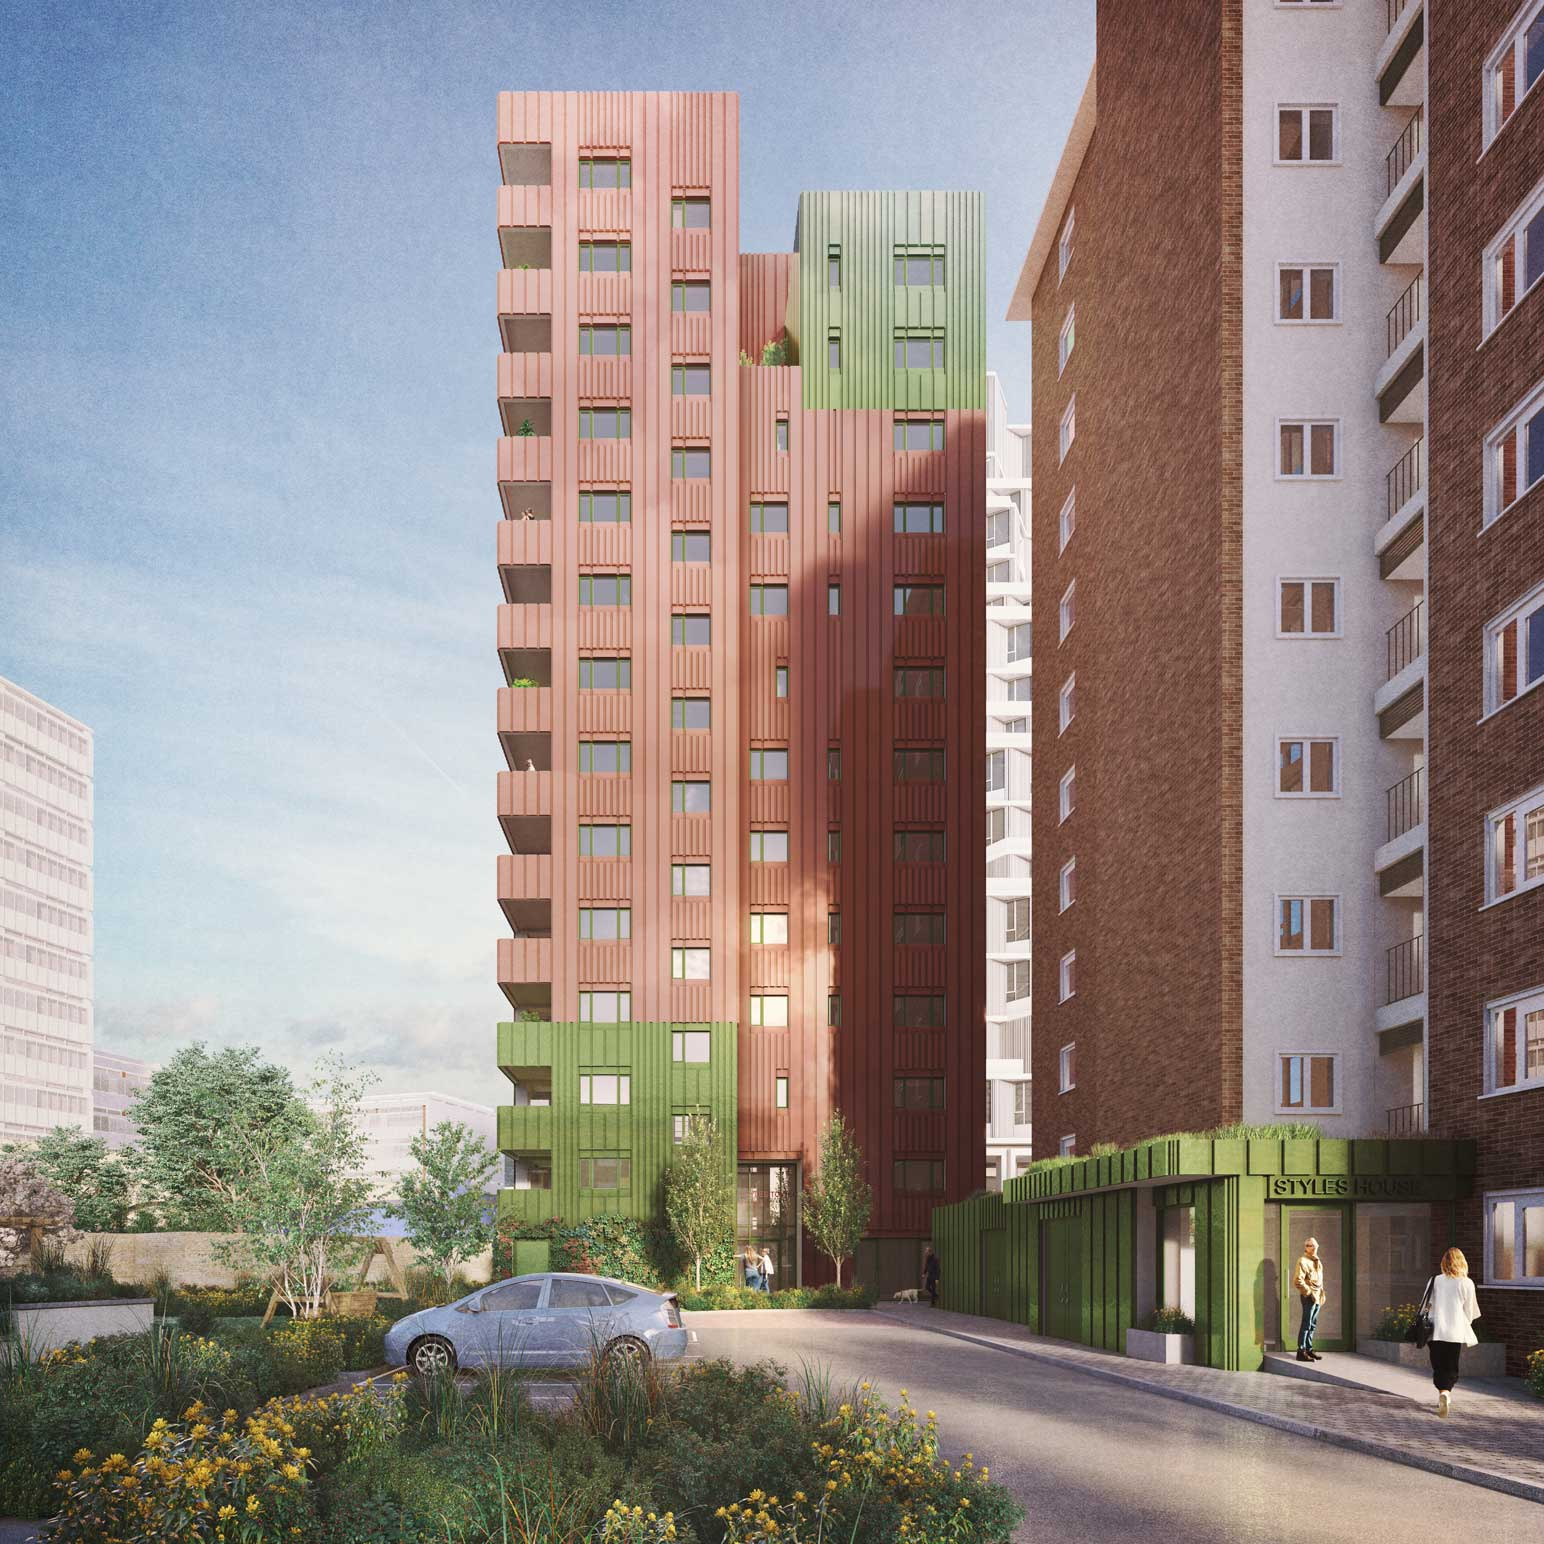 Planning granted for community-led housing